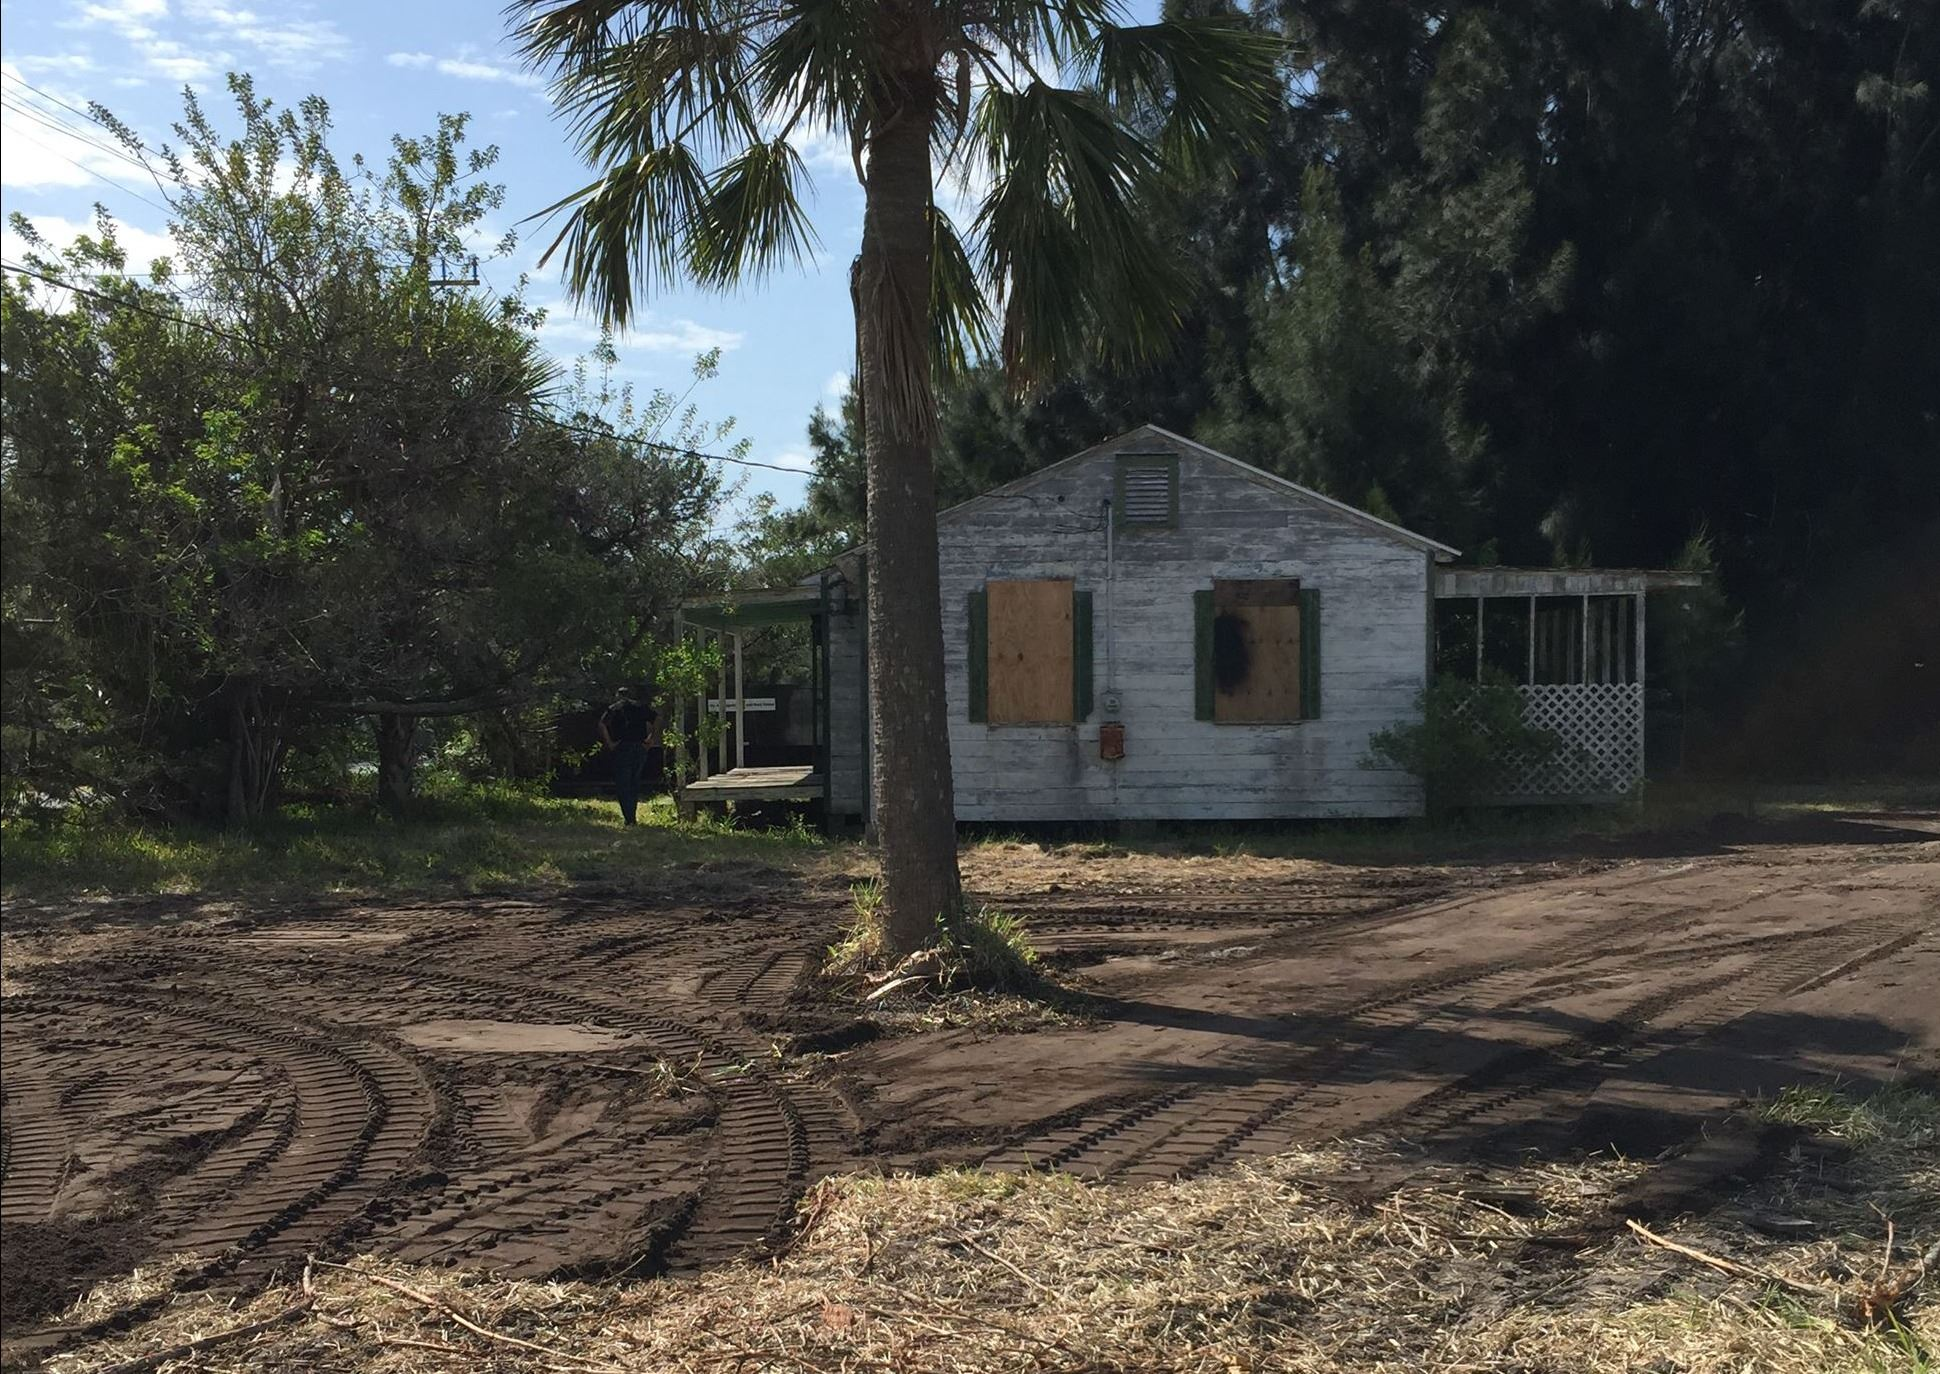 This image is of the cottage and surrounding area with dirt